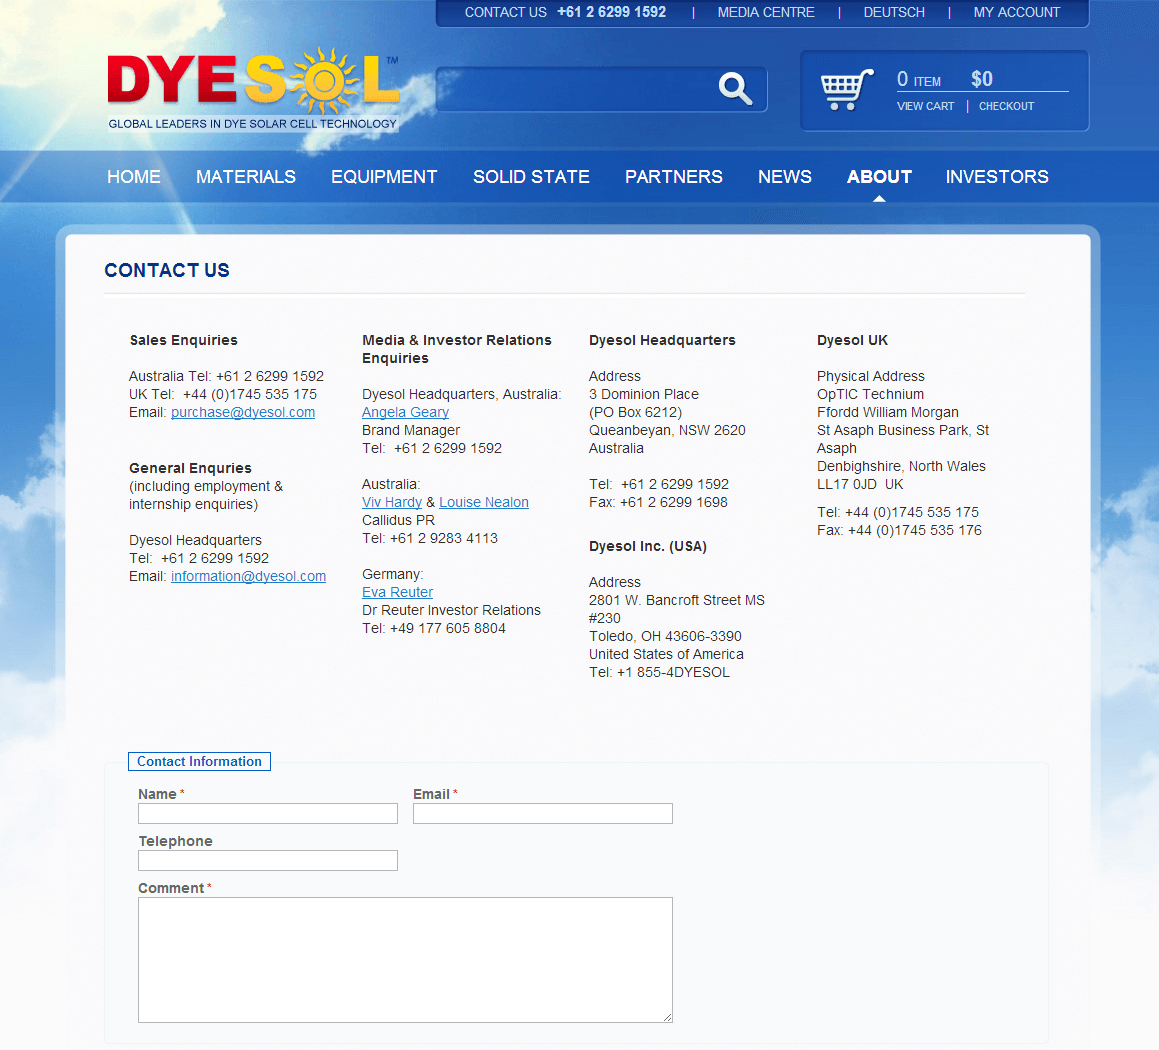 Dyesol Limited Website Link